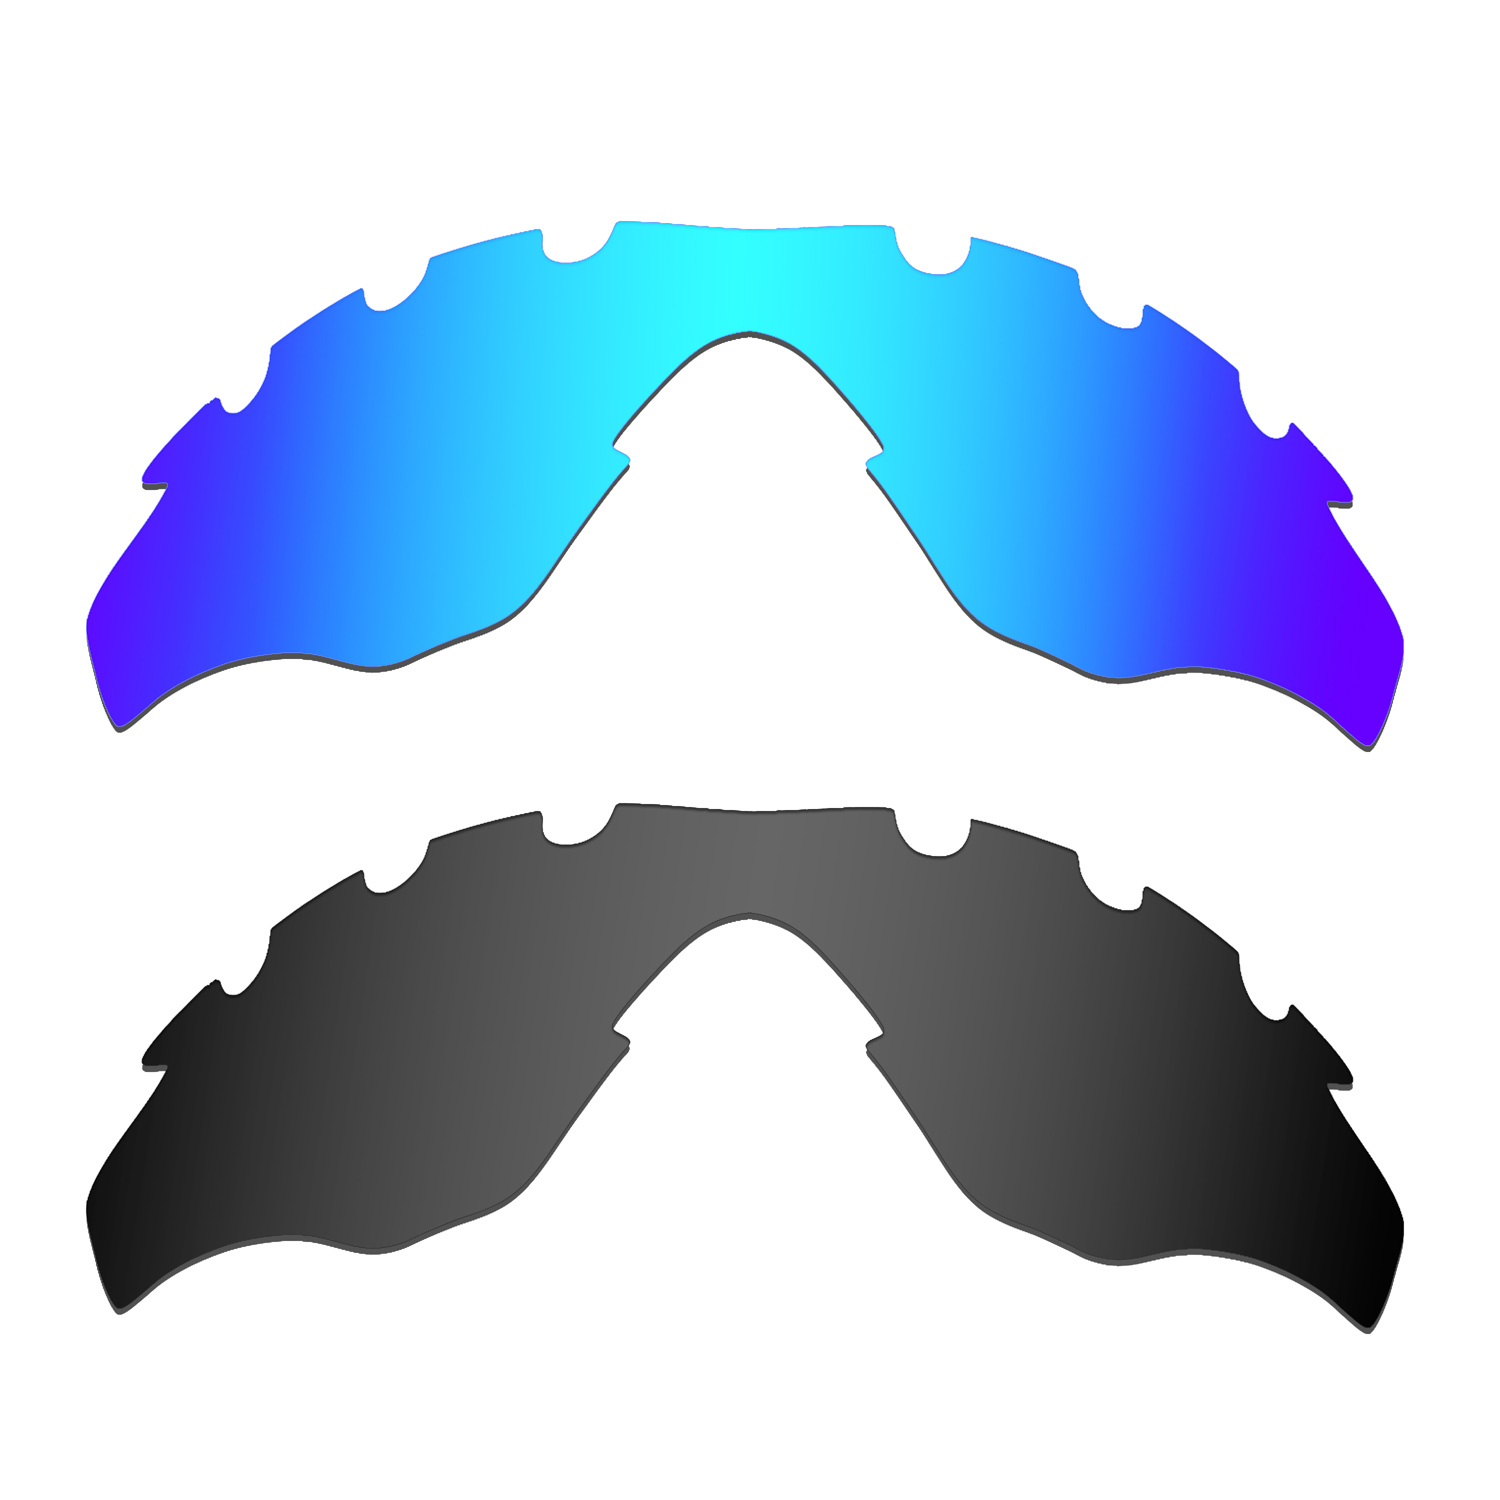 HKUCO For M2-Vented Sunglasses Replacement Polarized Lenses 2 Pairs - Blue & Black